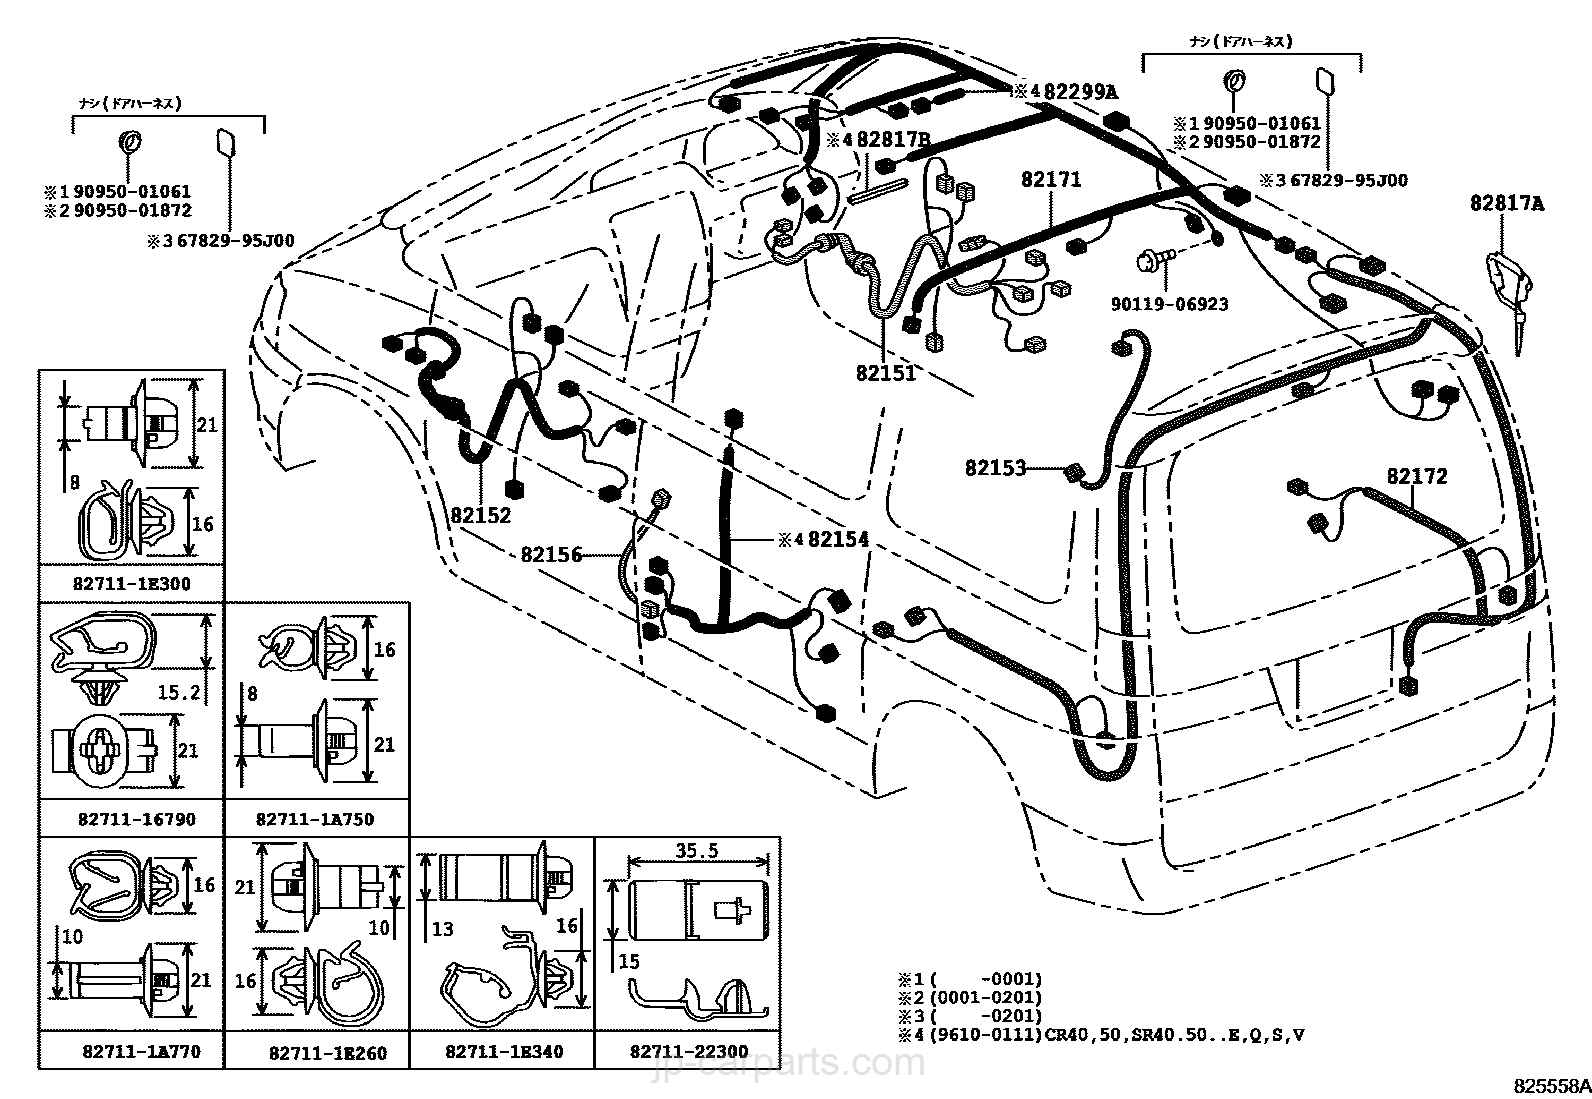 Toyota Liteace Wiring Diagram Download Trusted Diagrams Townace Tacoma Kr42 Wire